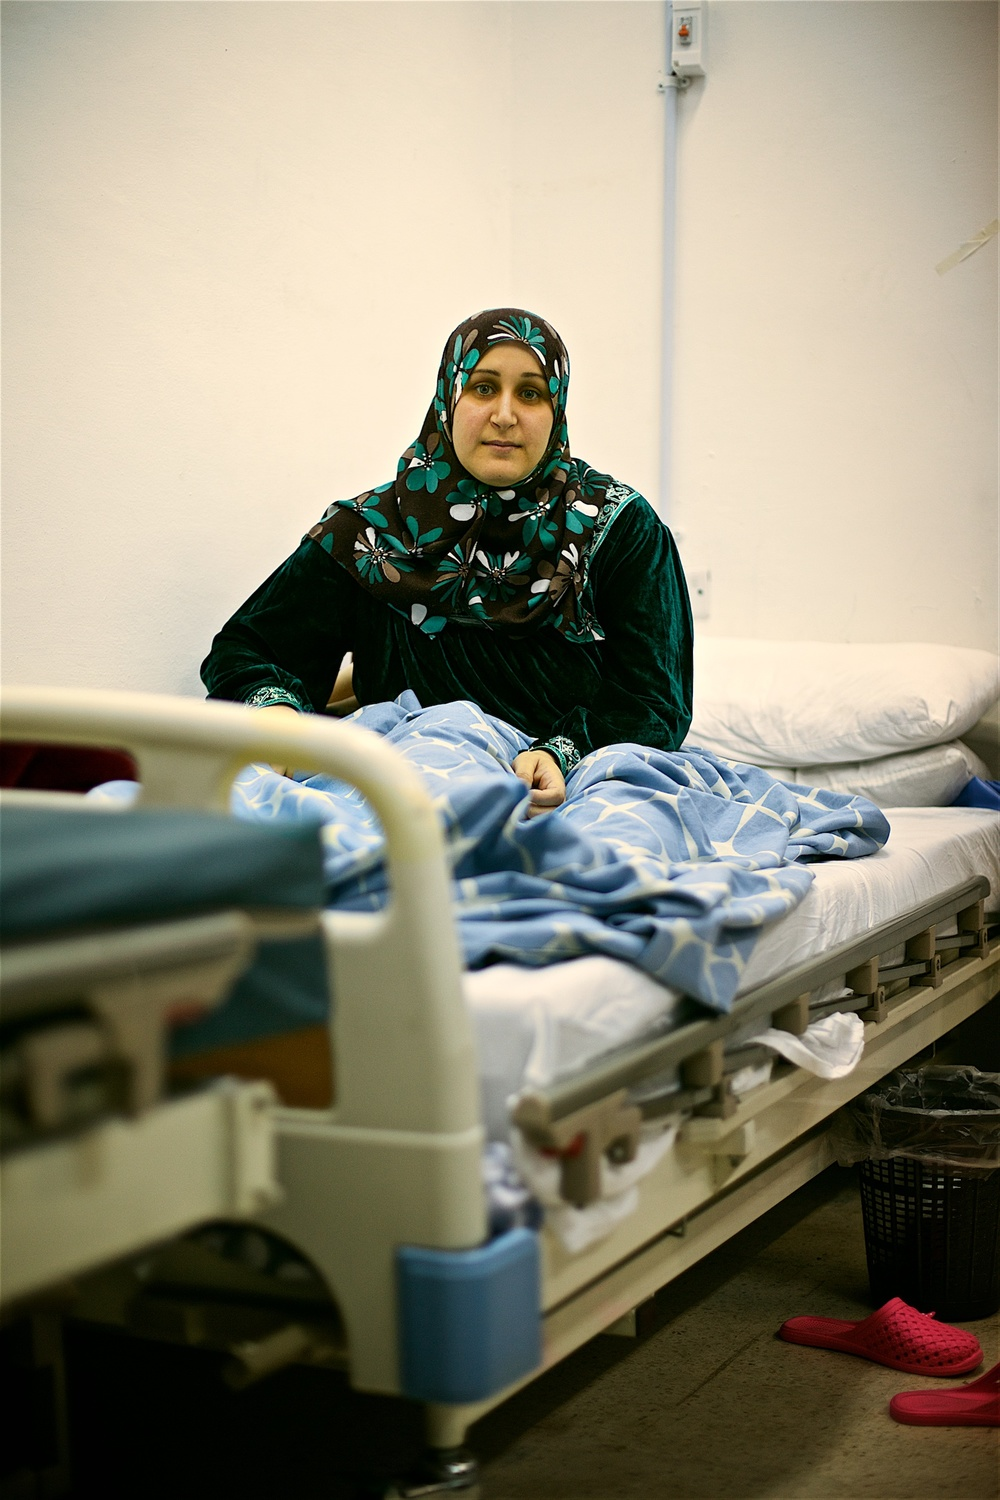 jordan-msf-al-ramtha-dectors-without-borders-war-hospital-refugee-camp-denis-bosnic-36.jpg